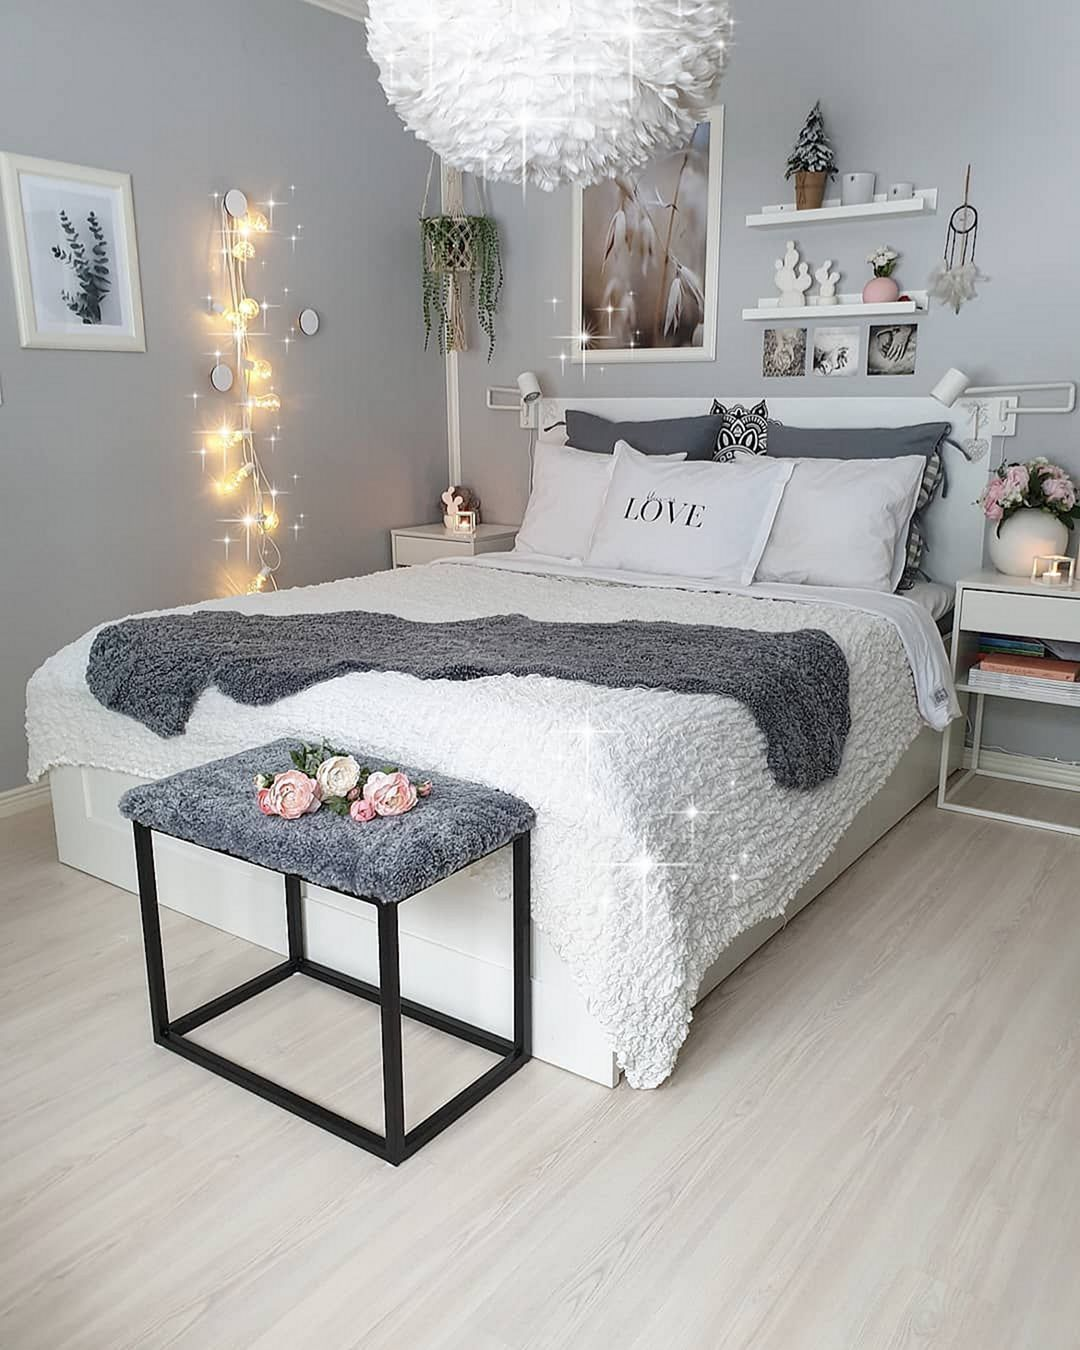 15 Gorgeous Small Bedroom Decorating Ideas That Look More Stylish Bedroomdecorationideas B Bedroo Small Bedroom Decor Stylish Bedroom Small Room Bedroom